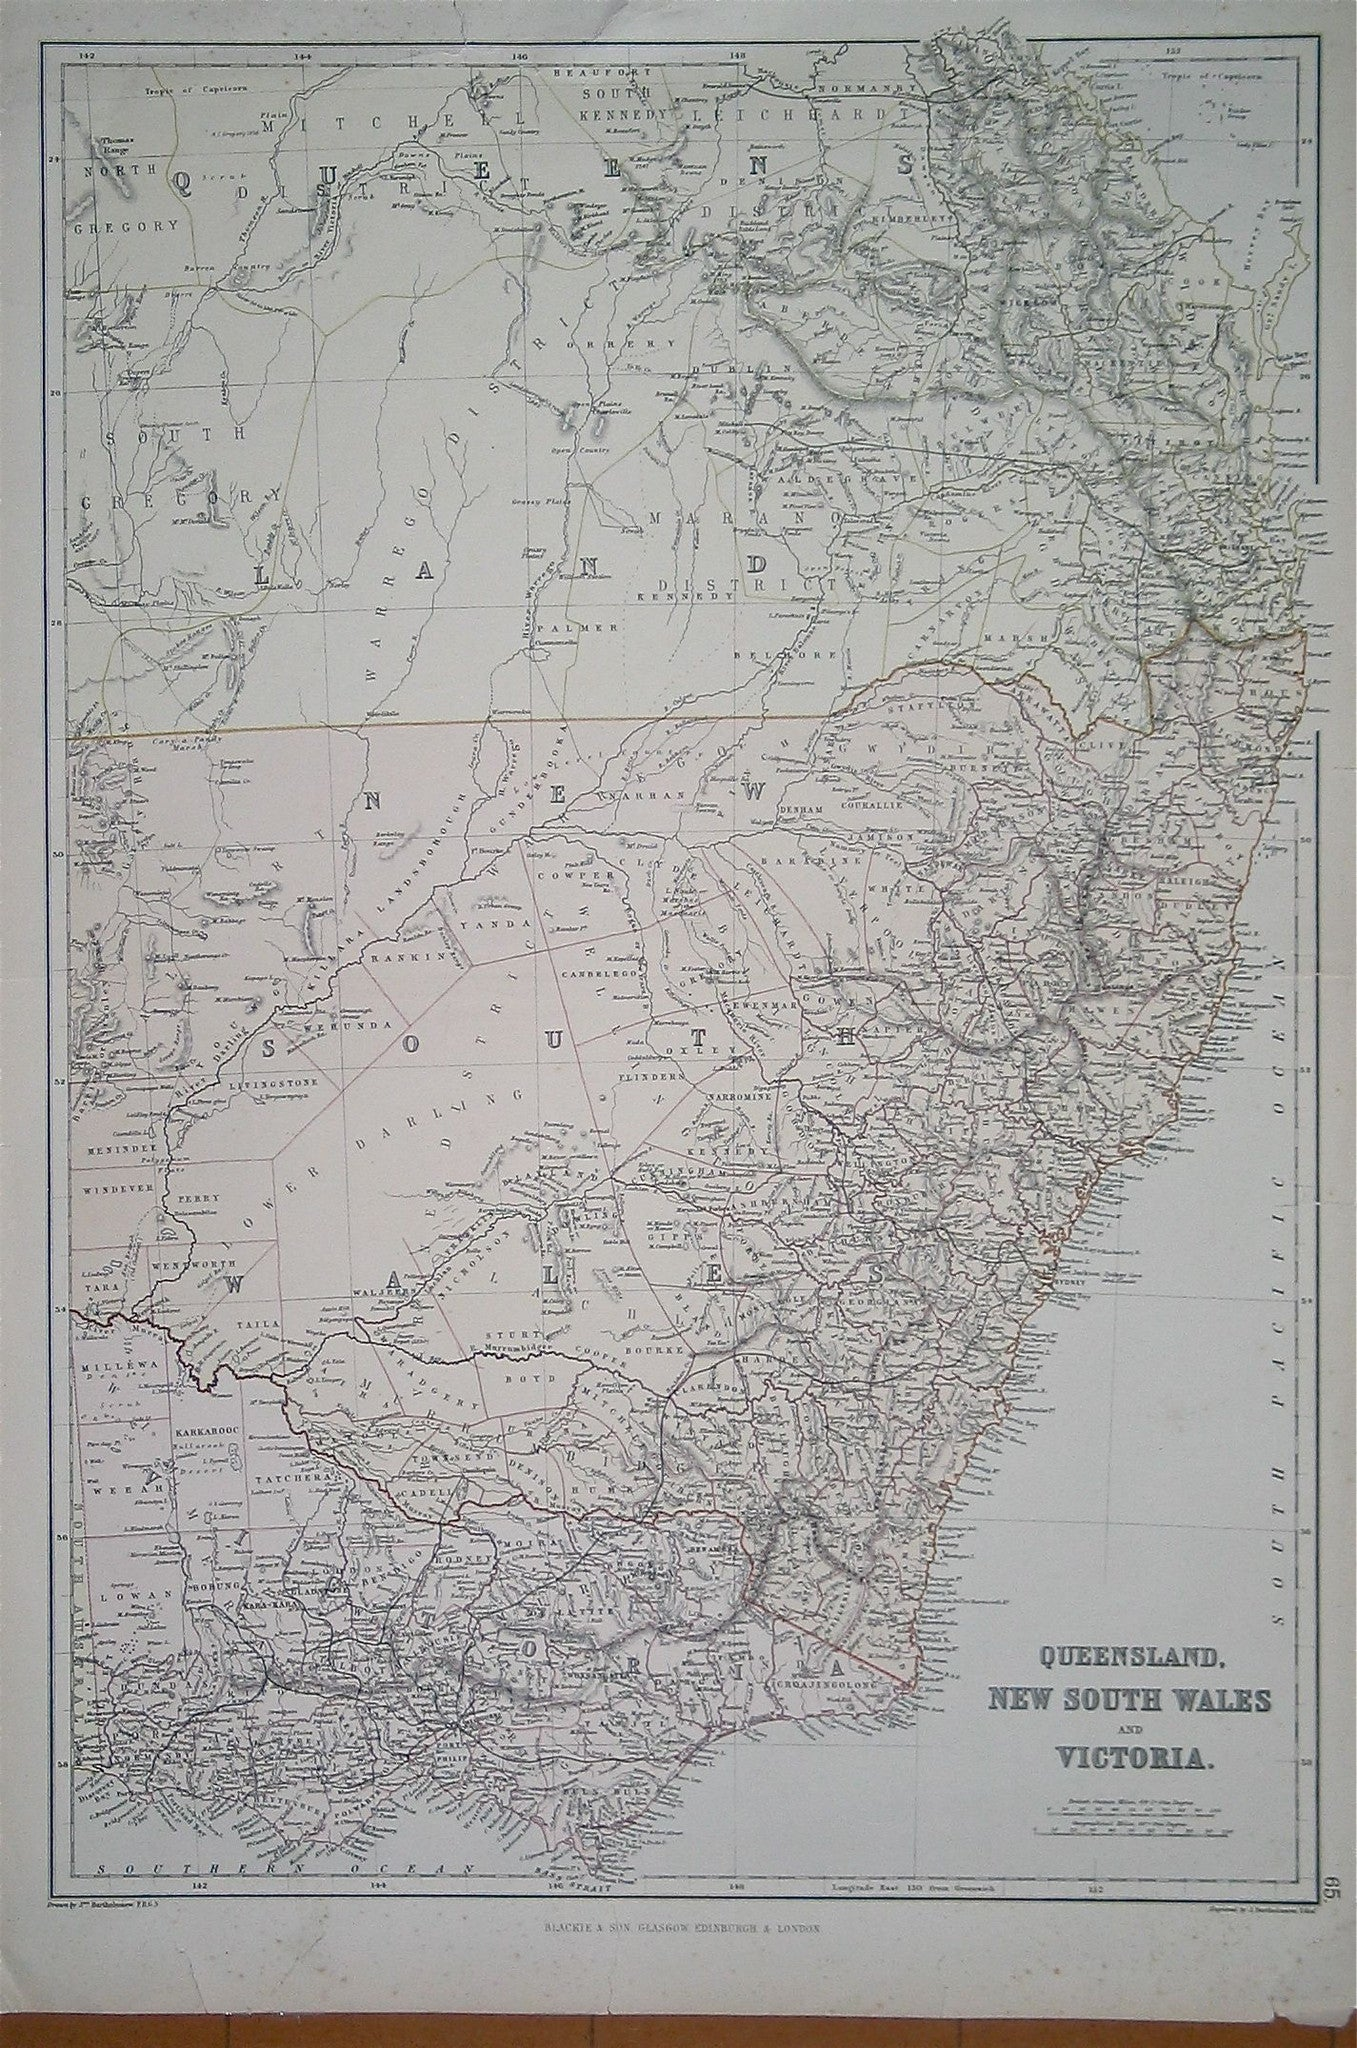 Map of Queensland, New South Wales and Victoria